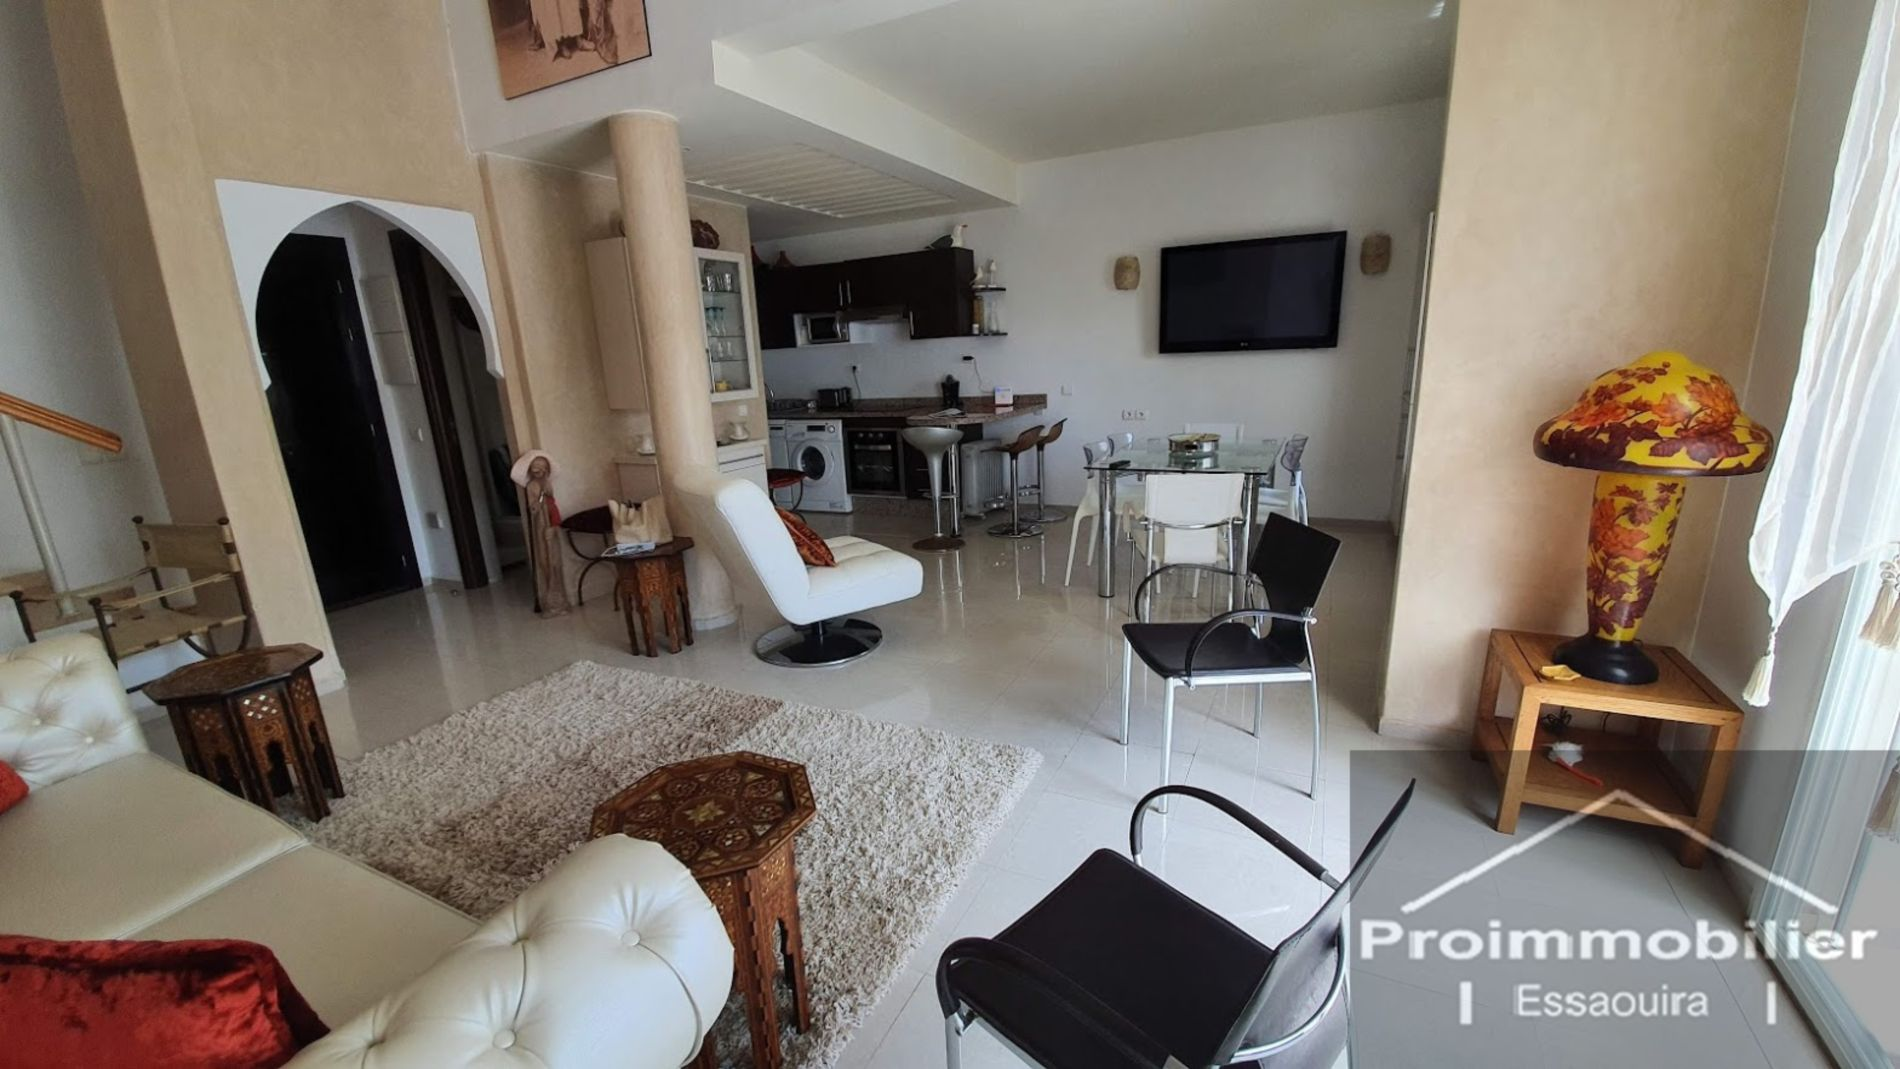 21-07-04-VA Loft for sale in Essaouira  90 m² on the seaside with access to the pool